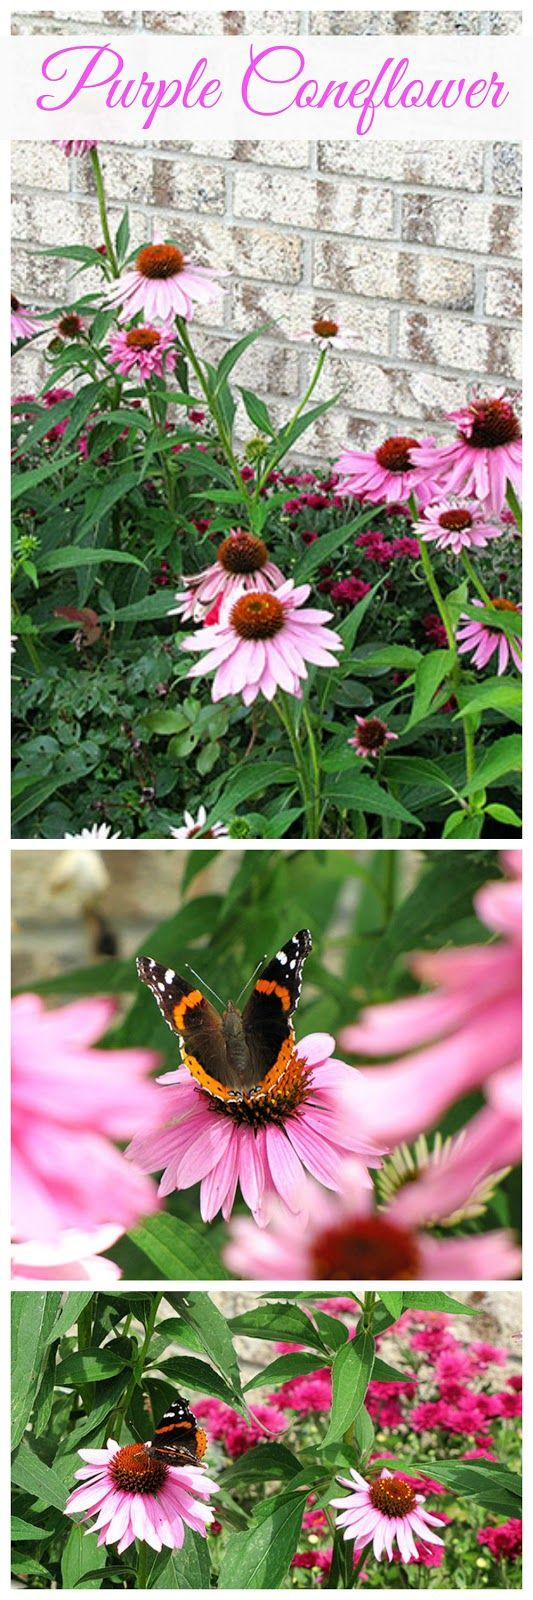 Purple Coneflowers are a beautiful addition to the sunny perennial garden. And it appears that Monarch butterflies love them too.